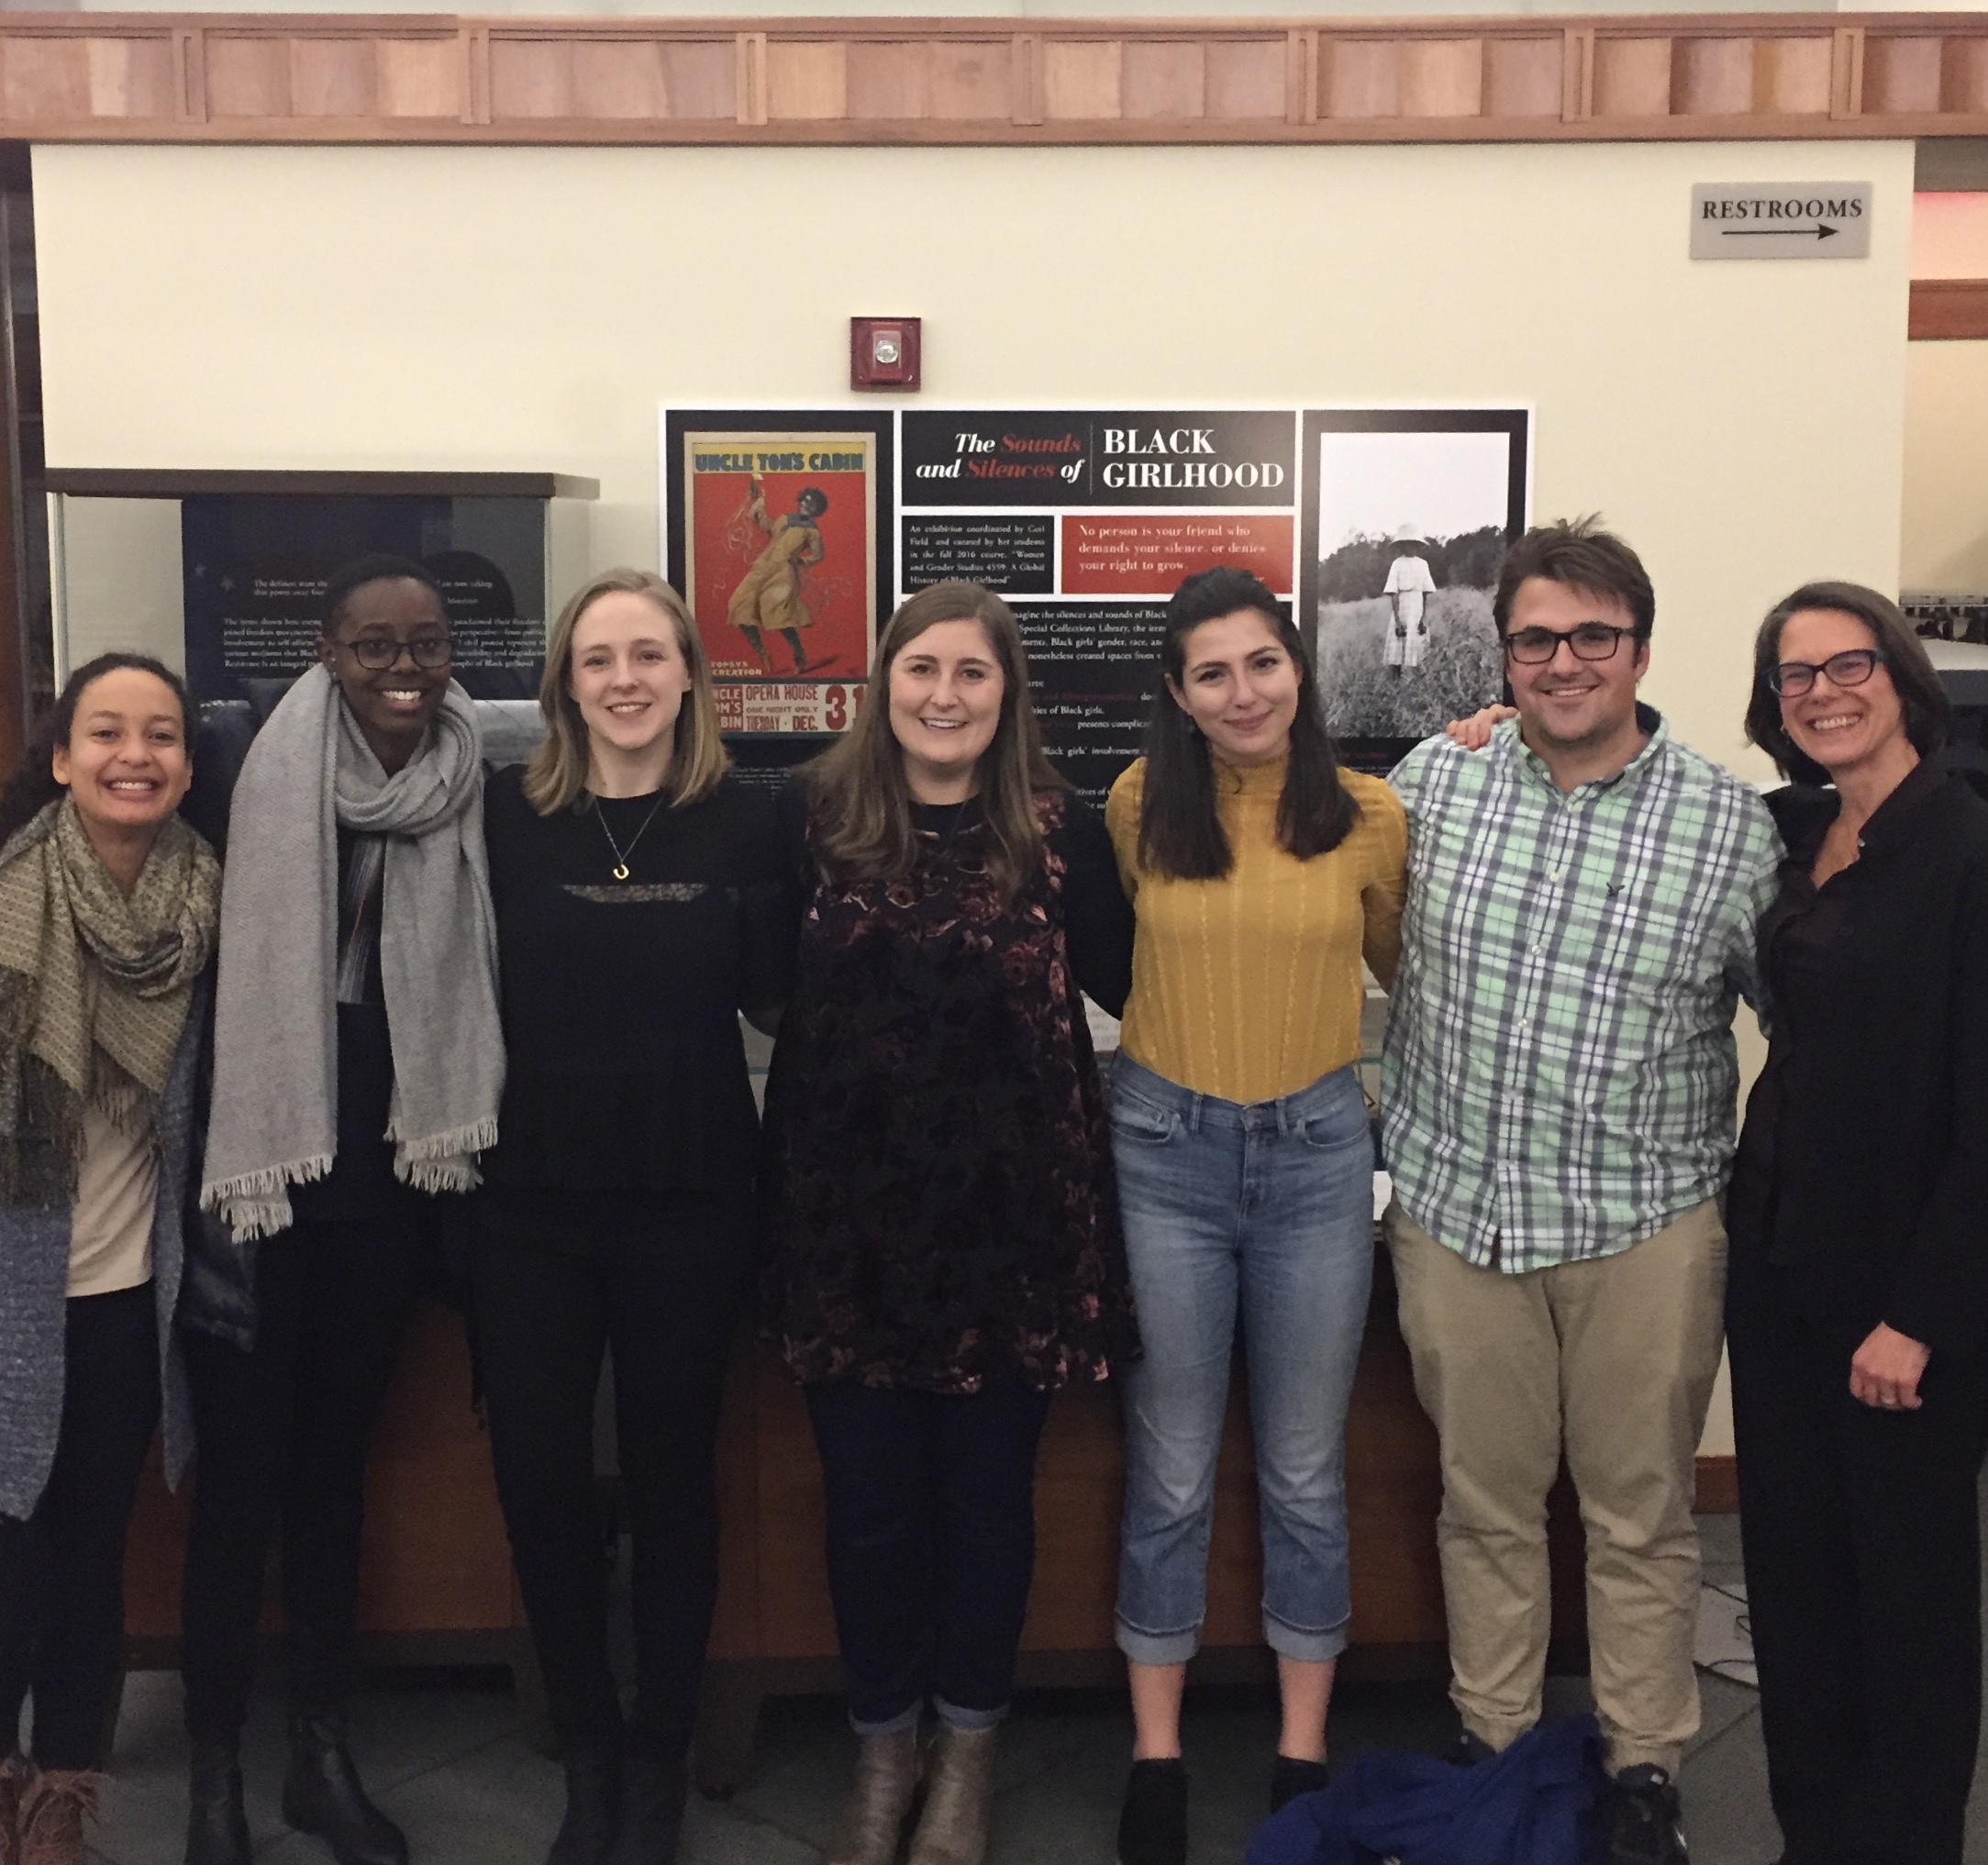 Assistant professor Corinne Field, right, with some of the students in her Global Black Girlhood class who created an exhibit at the Small Special Collections Library.